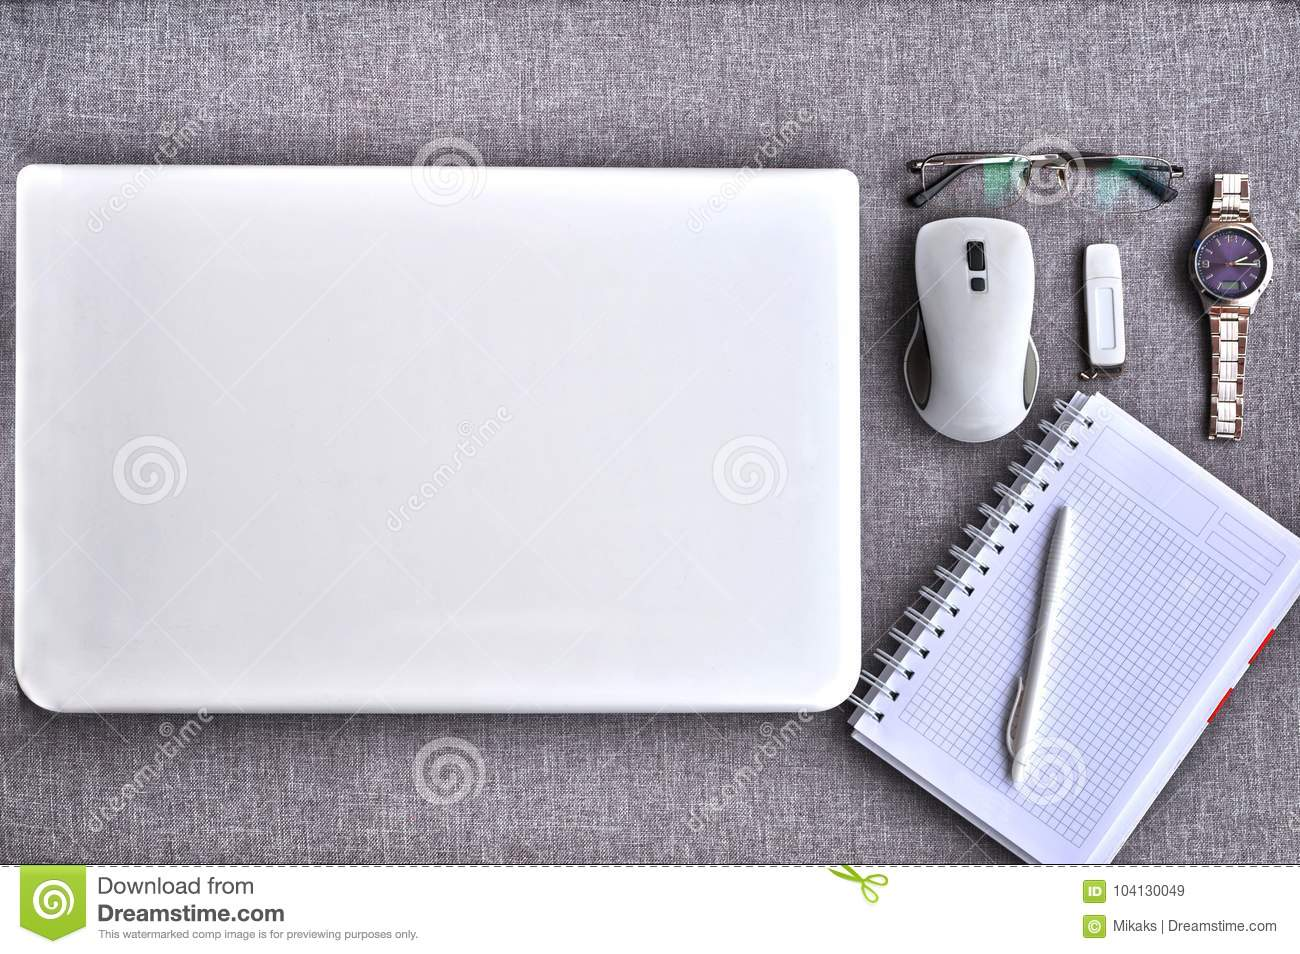 High above view of office workplace with laptop and mouse with paper, pen ,eyeglasses, usb stick, watch on grey desk